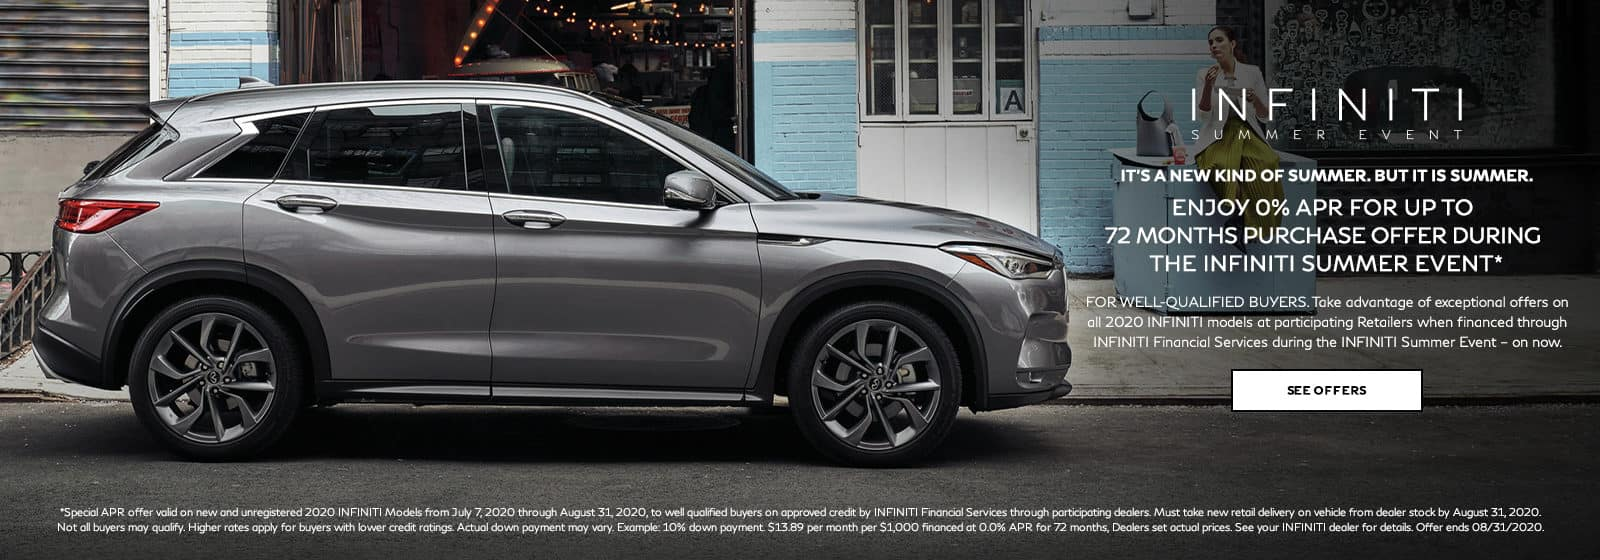 INFINITI Summer Event. 0% APR for up to 72 months Purchase offer. For well-qualified buyers. Restrictions may apply. See retailer for complete details. Offer ends August 31, 2020.